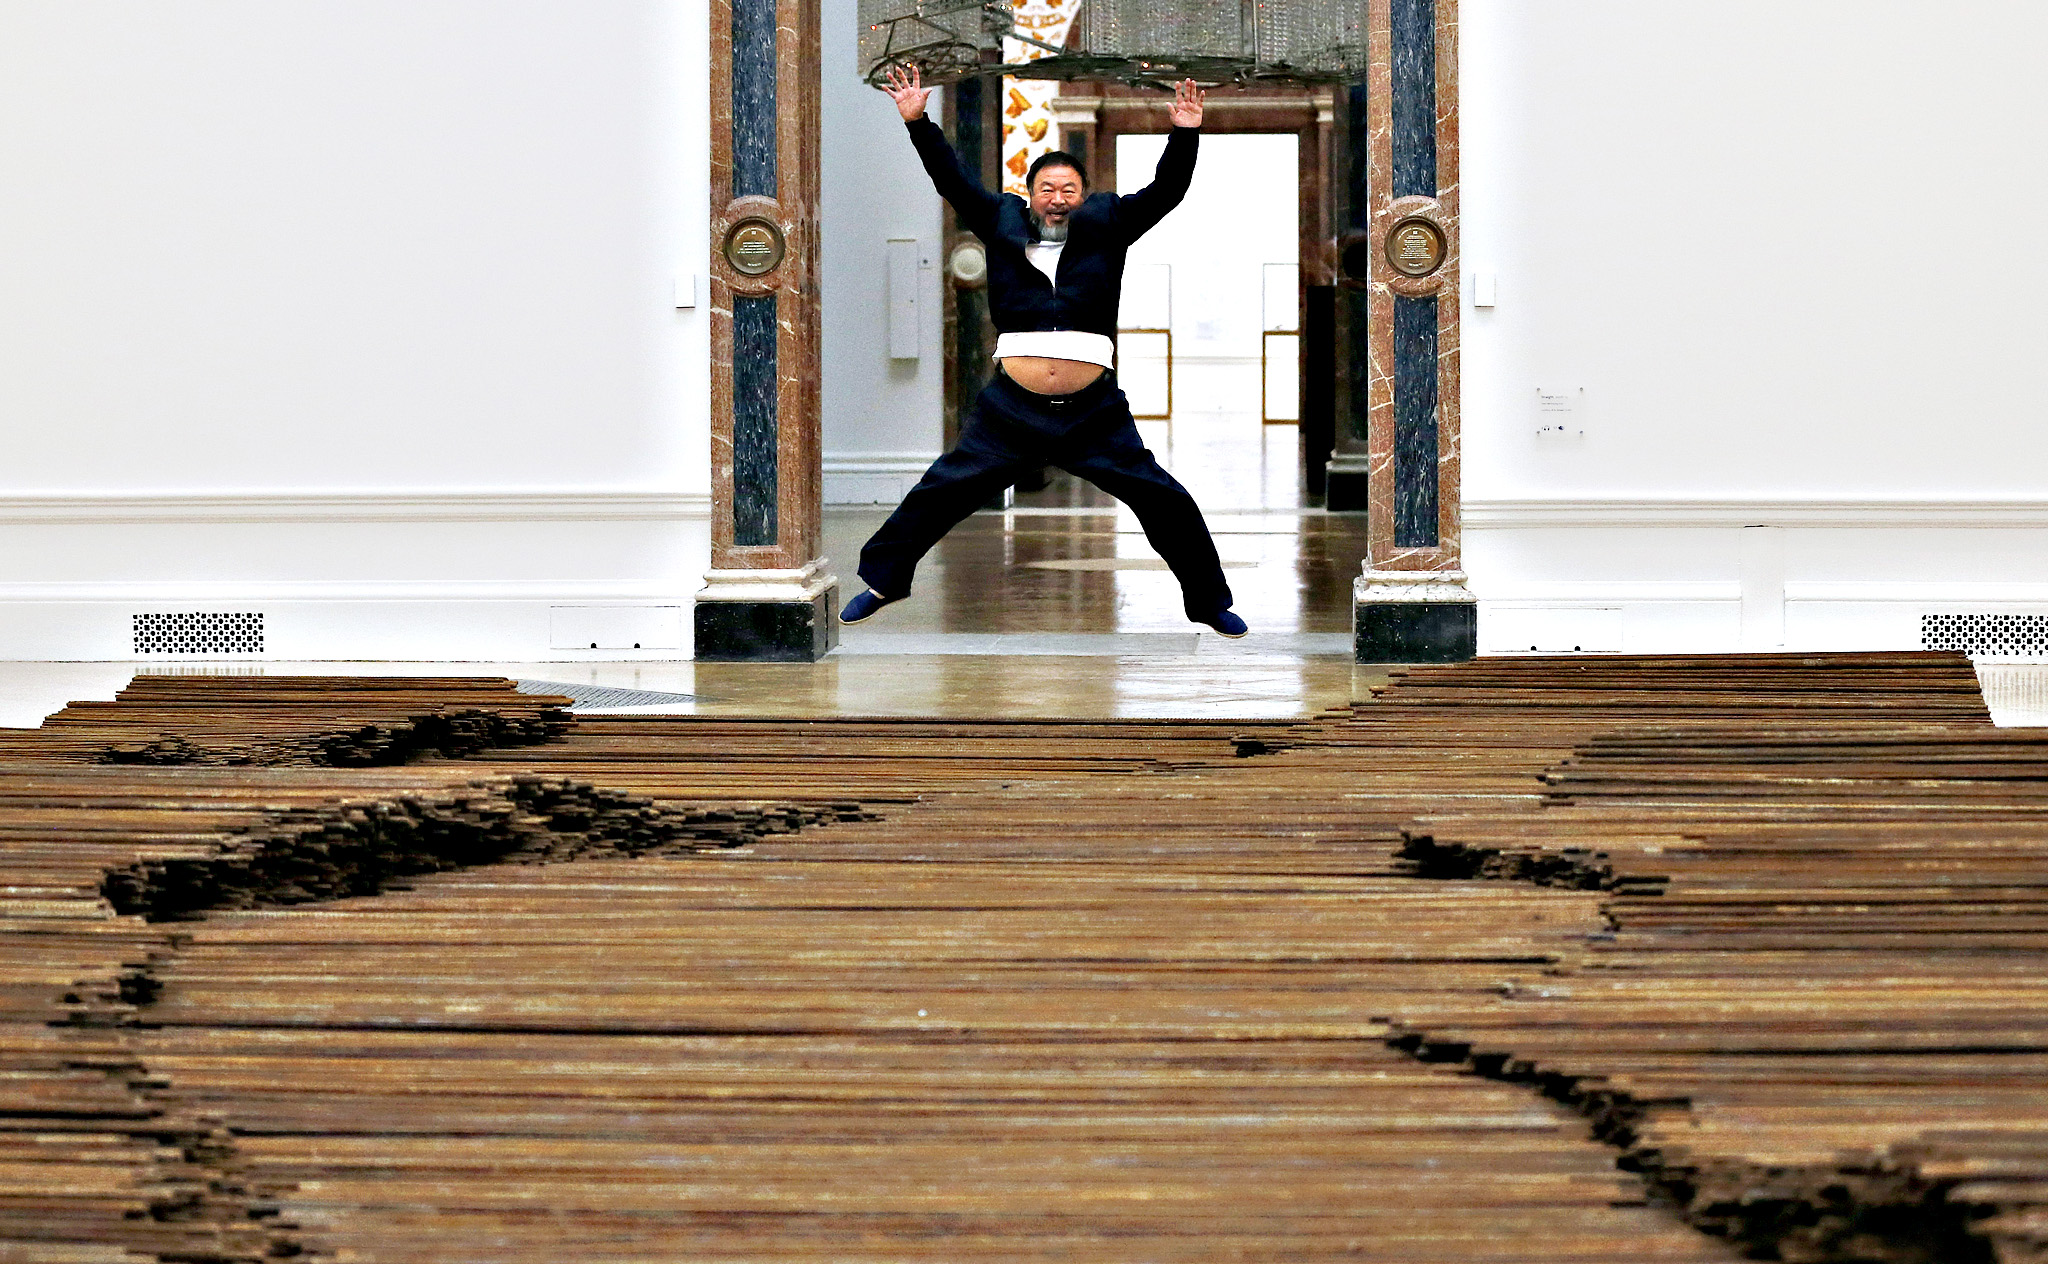 Chinese artist Ai Weiwei poses for photographers with one of his pieces at his exhibition at the Royal Academy of Arts in London, Tuesday, Sept. 15, 2015. The exhibition opens to the public on September 19th